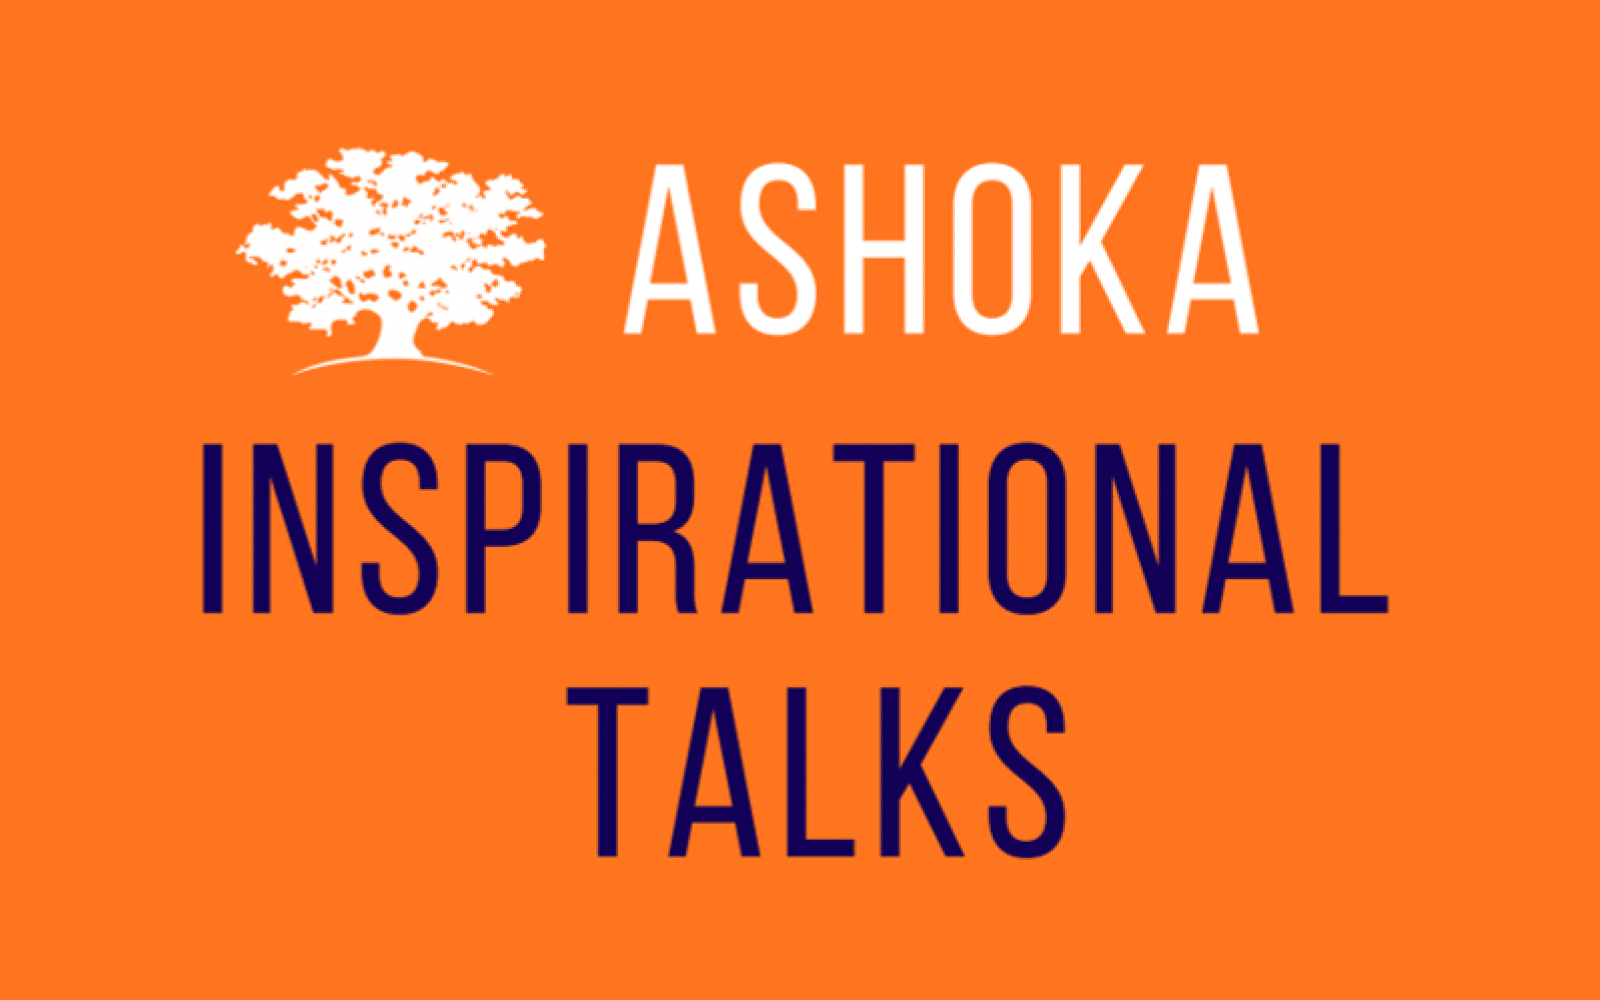 Ashoka inspirational talks